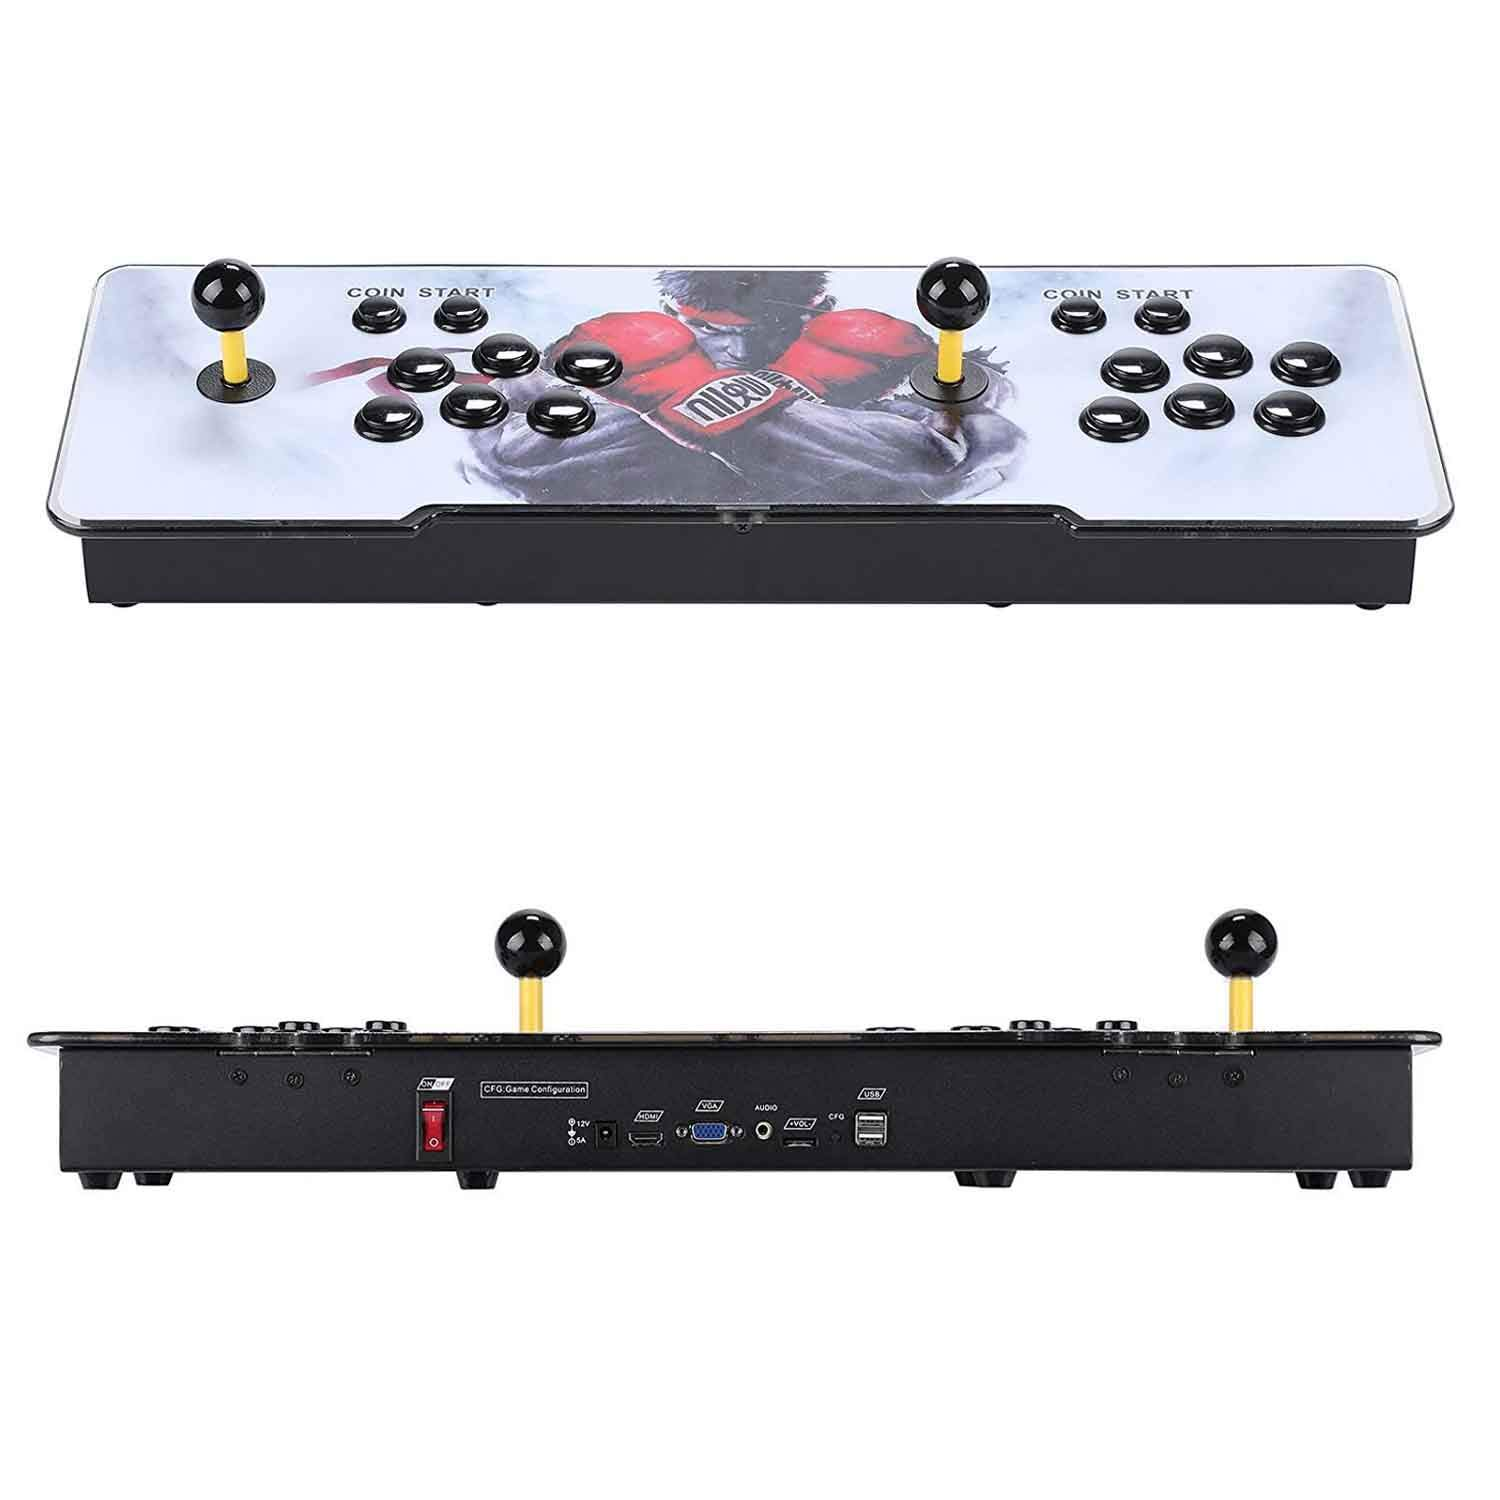 Vemac 3D Pandora Box add Additional Games with Full HD Arcade Console Upgraded CPU 2 Players Pandoras Box 9s Video Game Console with Arcade Joystick Support HDMI VGA USB (2400in1) (Black) by Vemac (Image #4)